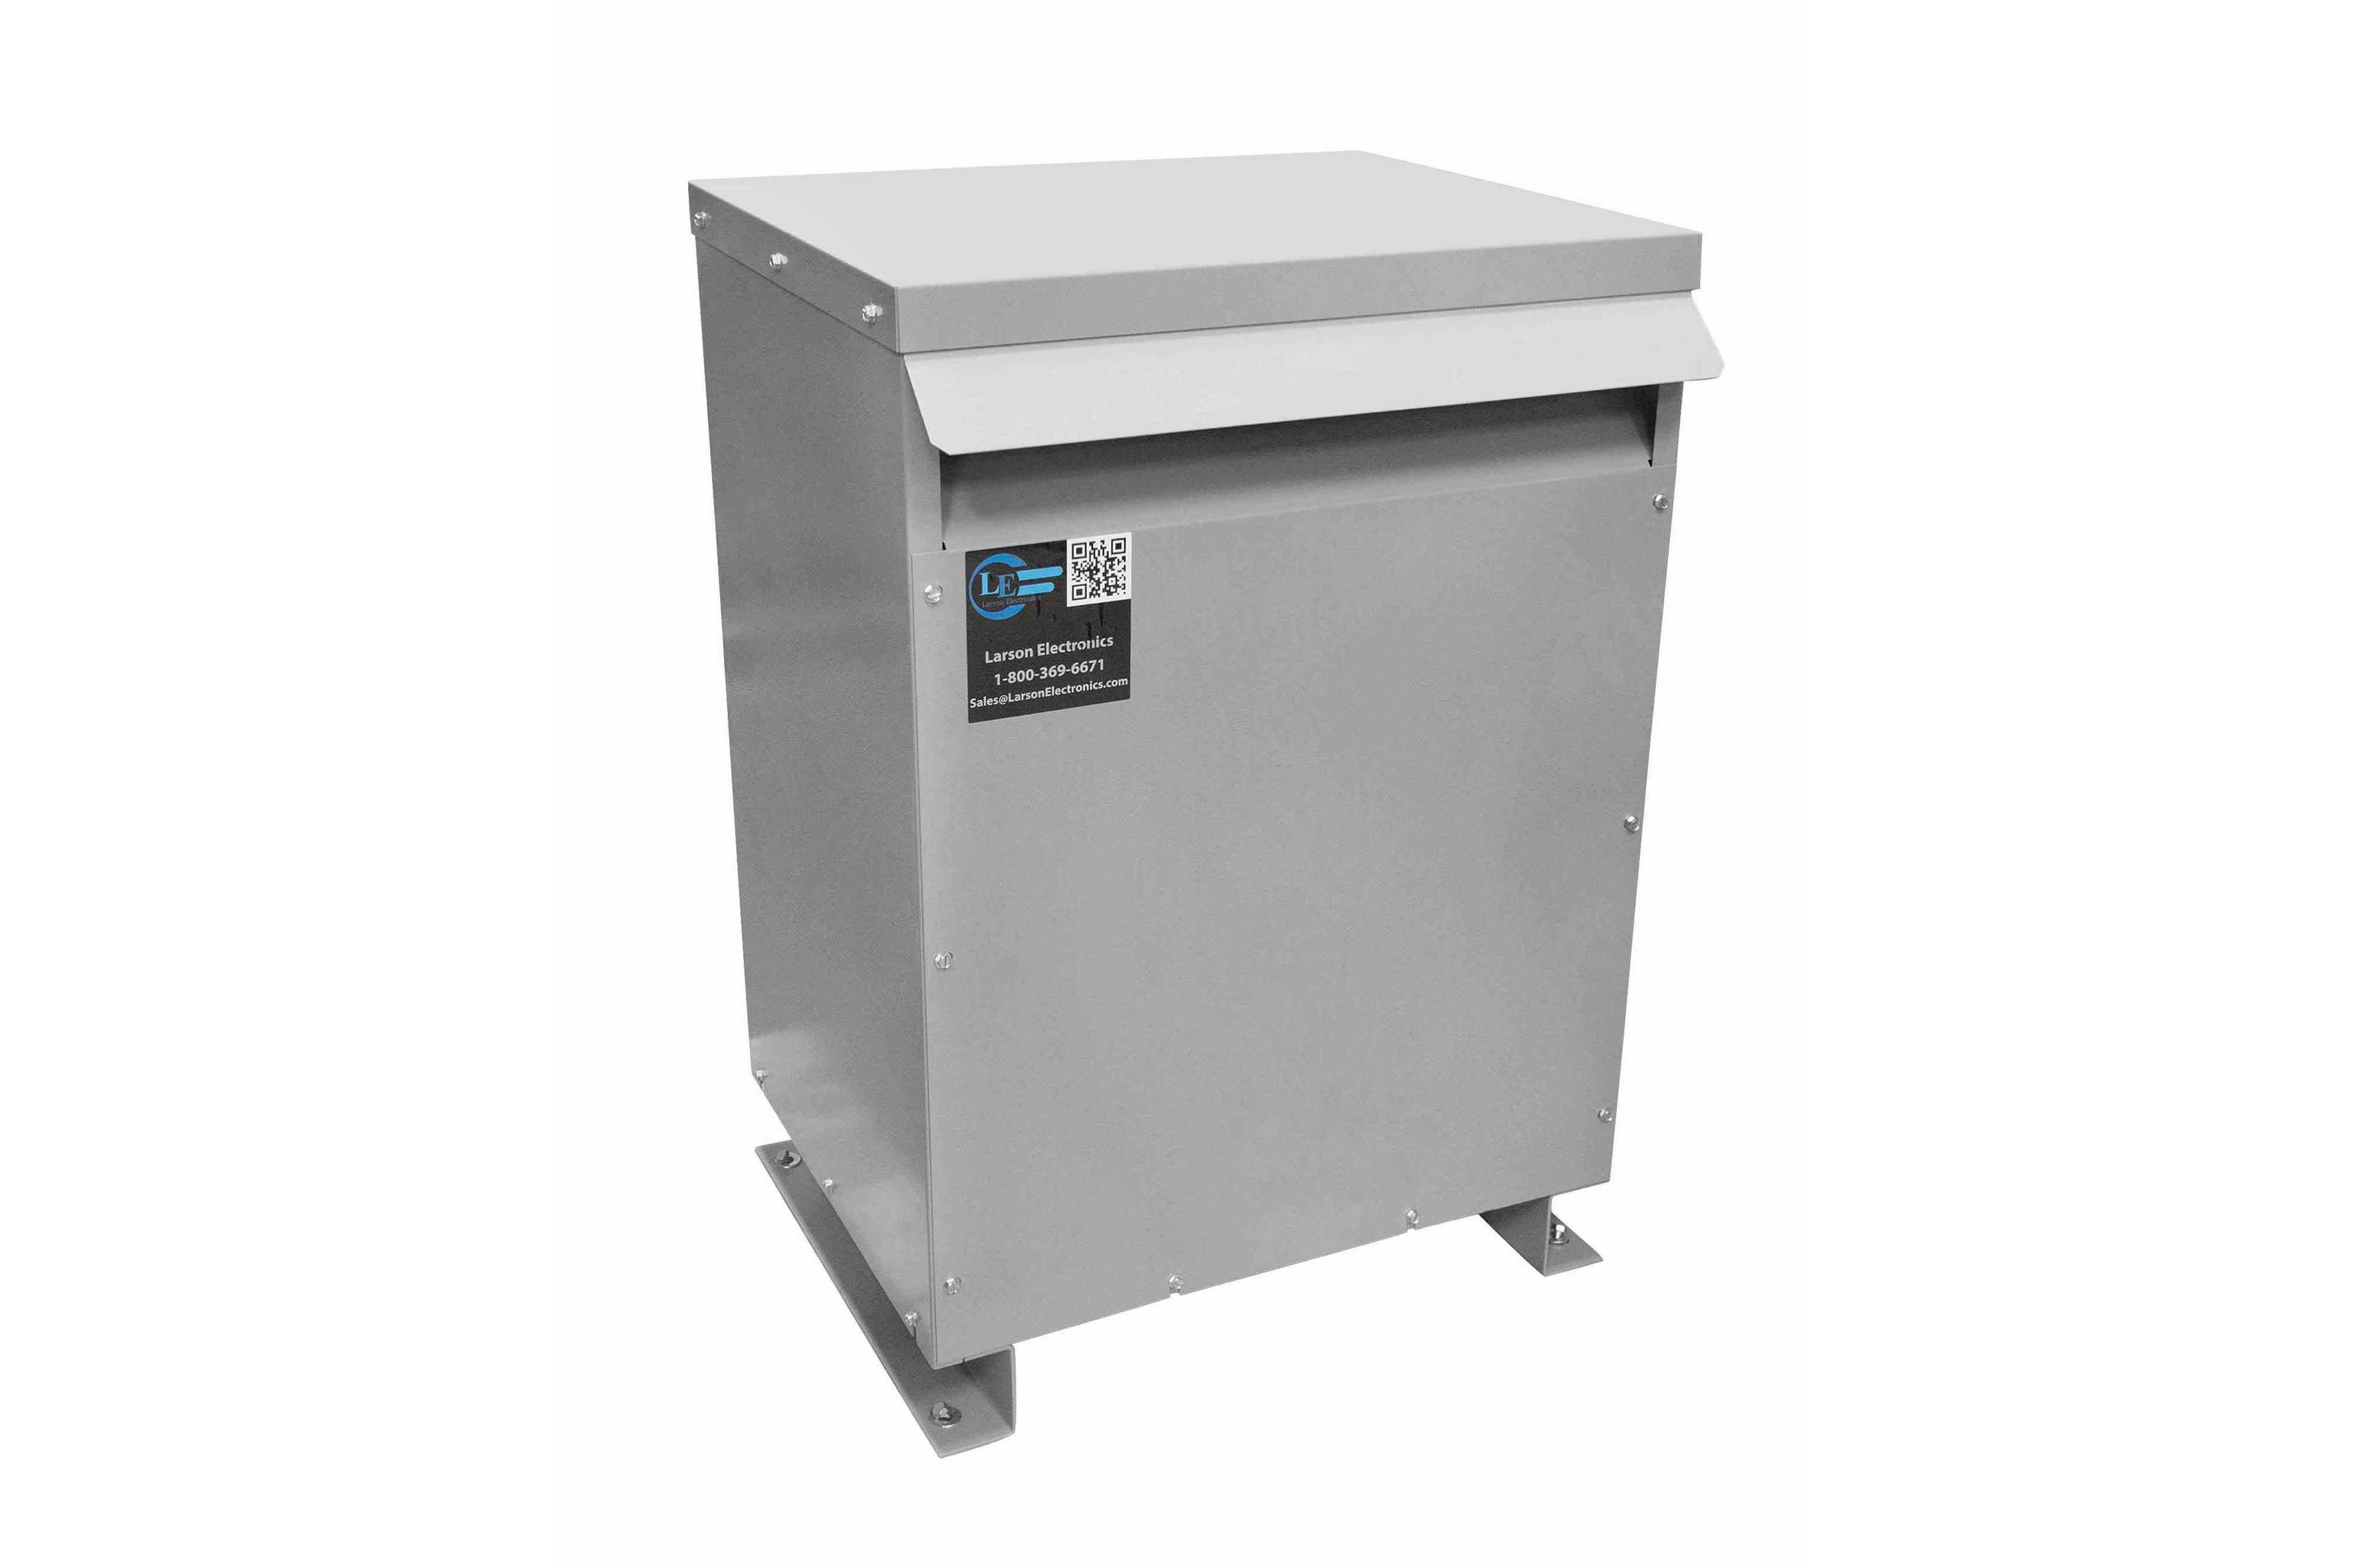 15 kVA 3PH Isolation Transformer, 600V Delta Primary, 380V Delta Secondary, N3R, Ventilated, 60 Hz